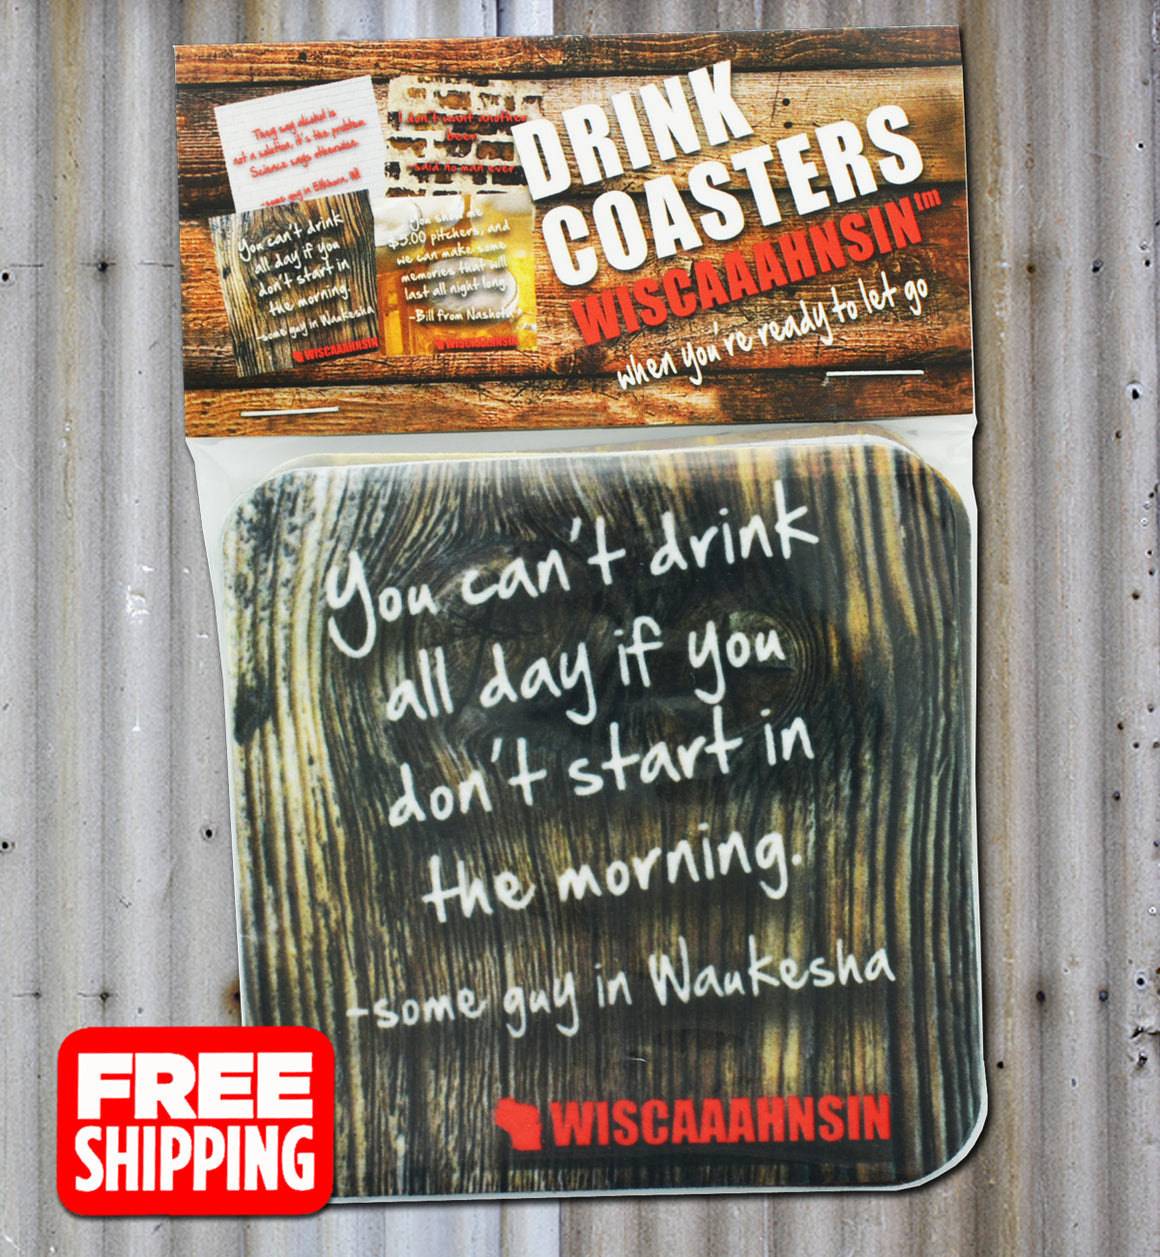 WISCONSIN COASTERS - FREE SHIPPING!